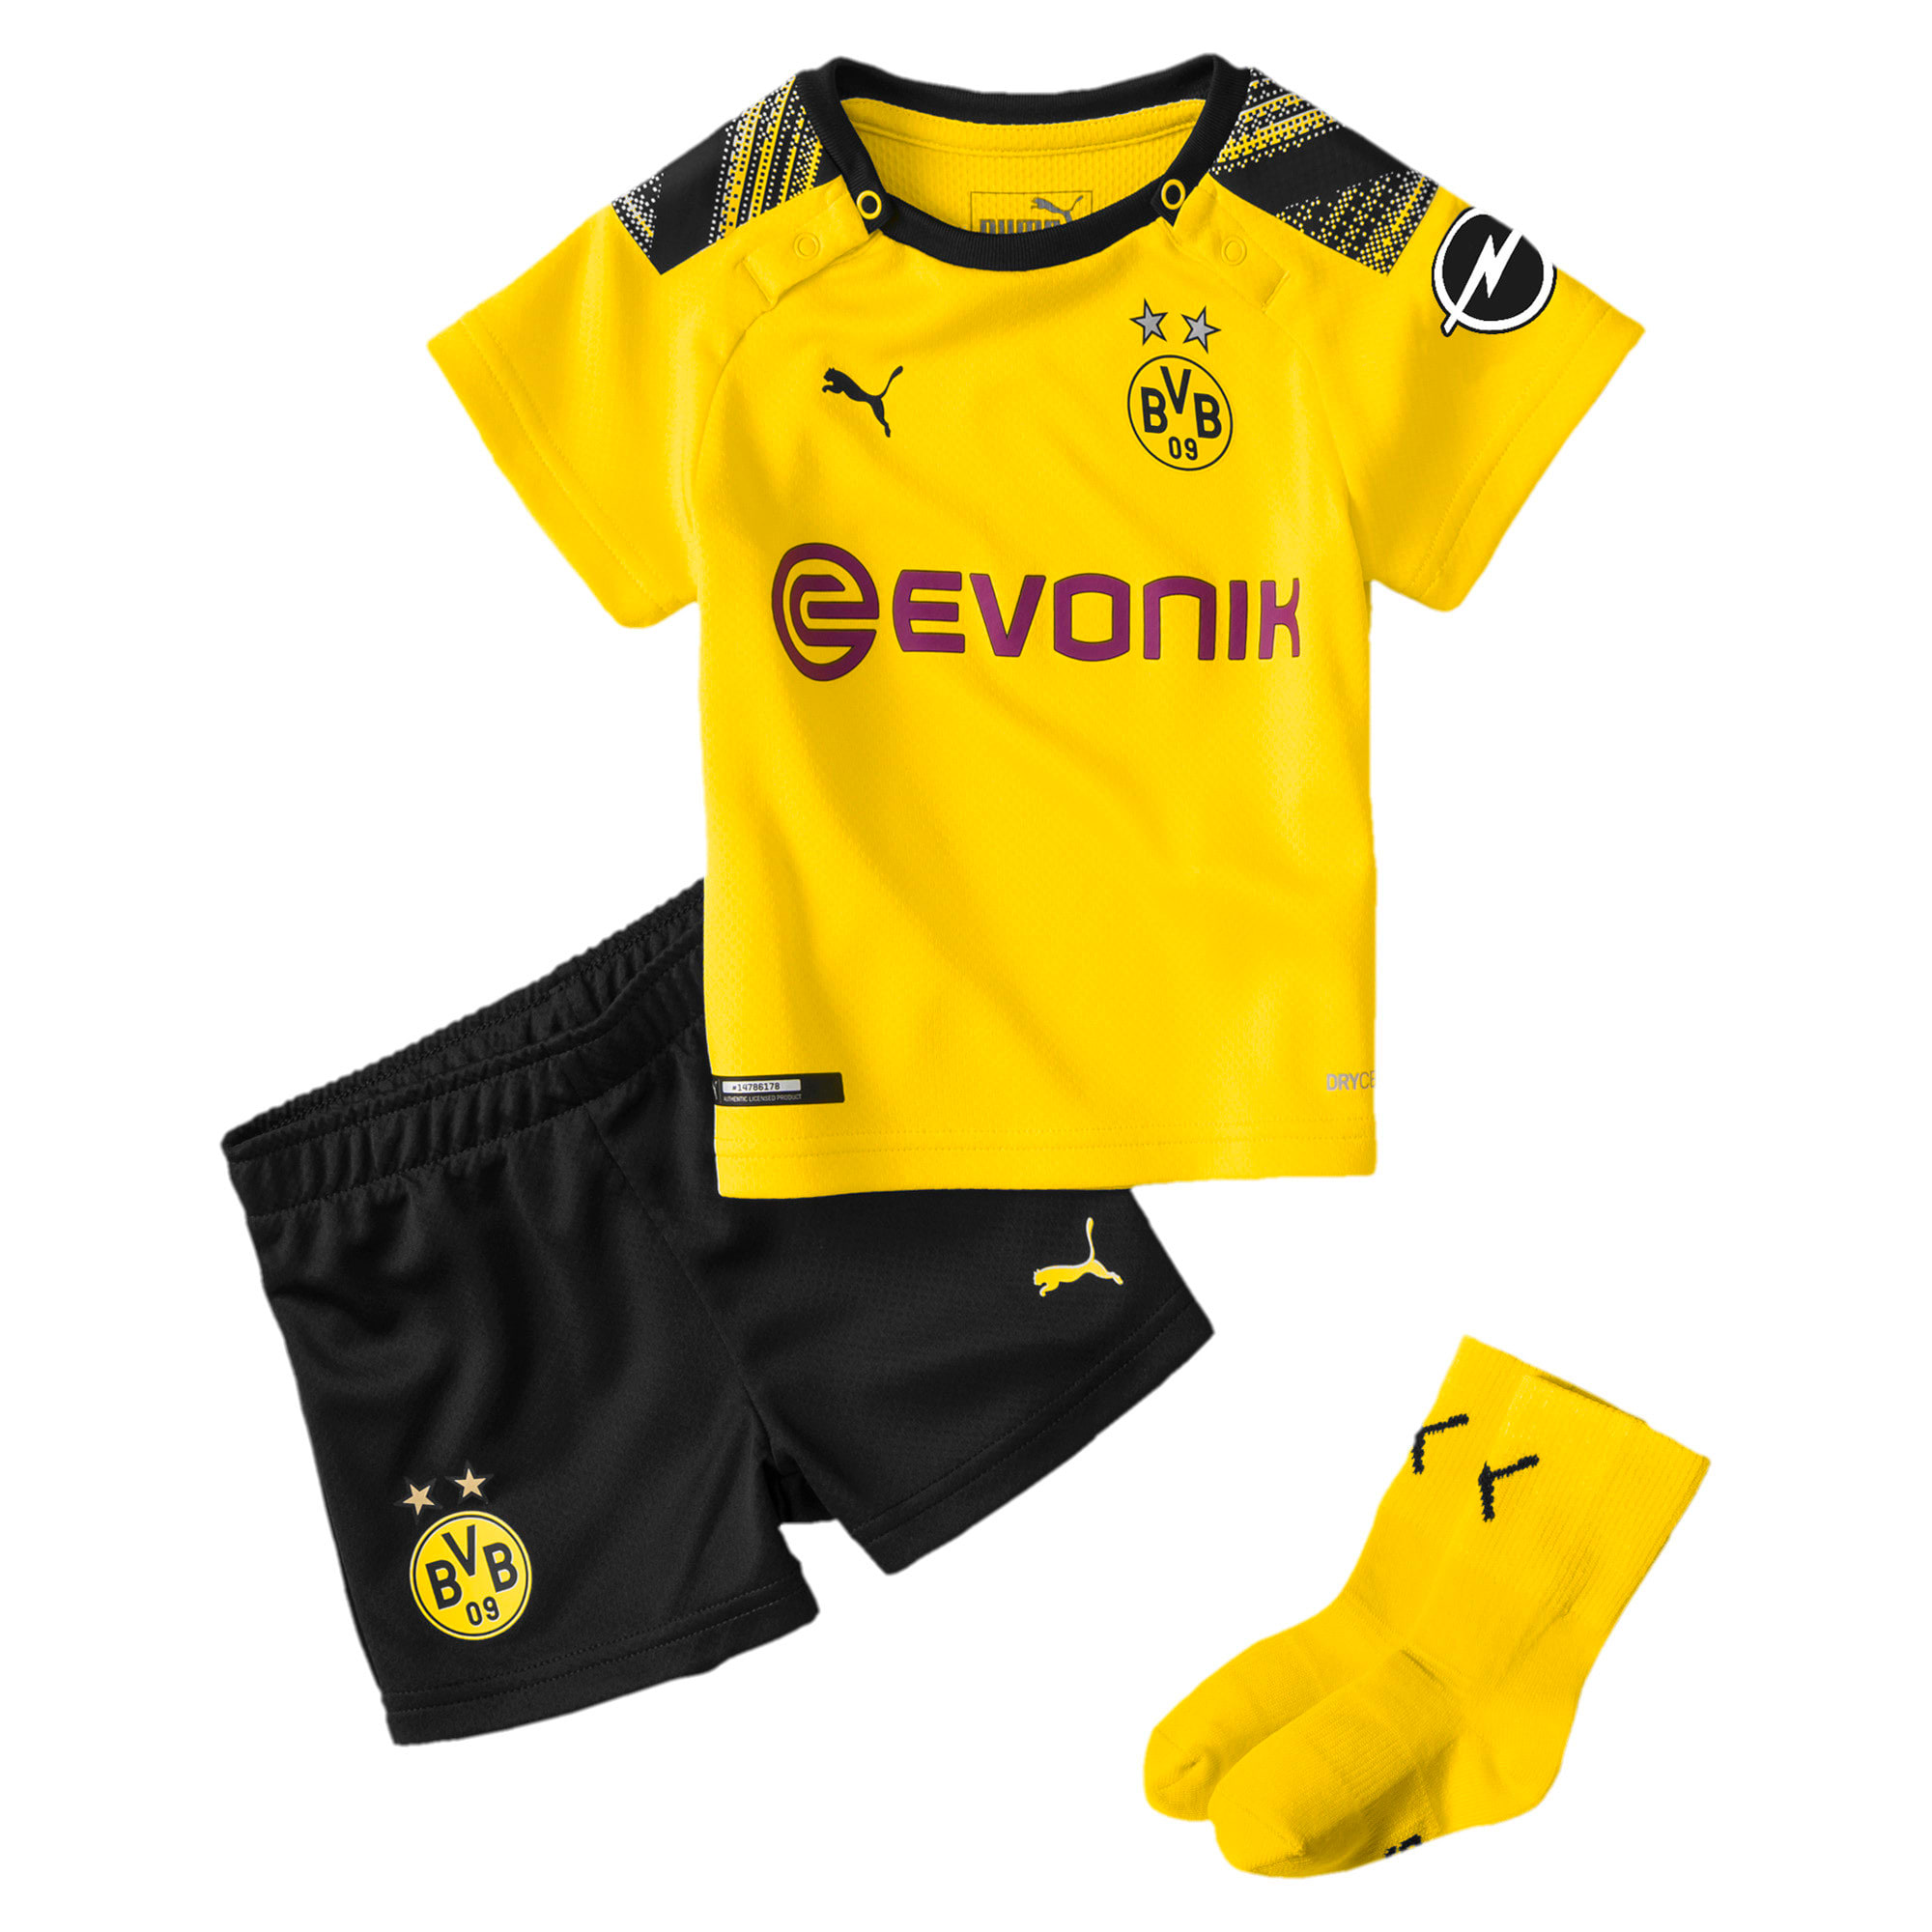 Thumbnail 1 of BVB mini-thuisset voor baby's, Cyber Yellow-Puma Black, medium